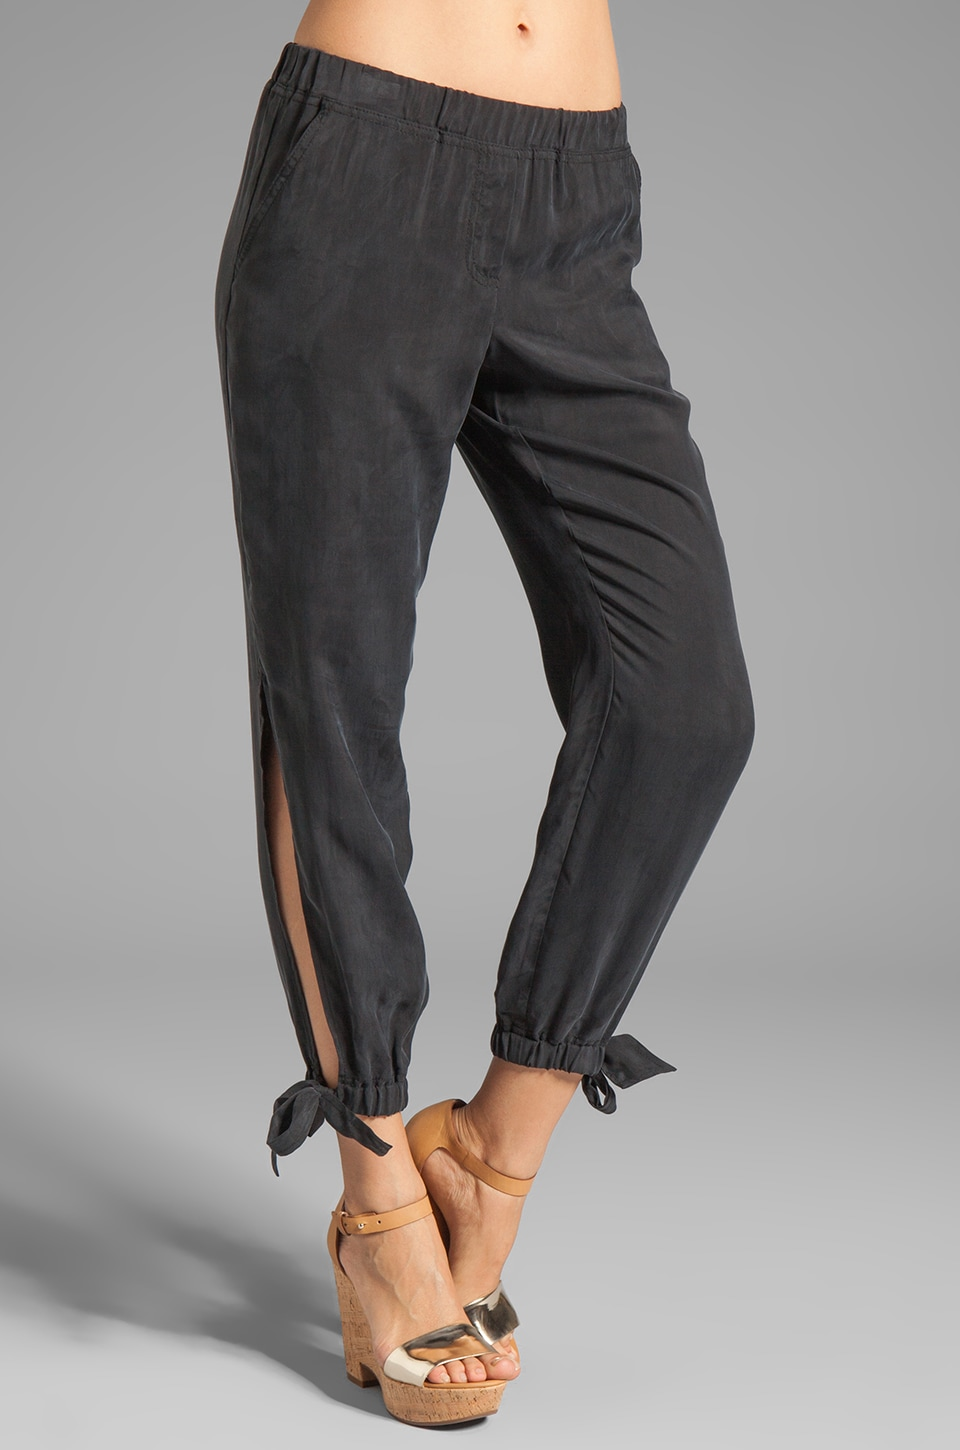 Trina Turk Liquid Washed Twill Cardolino Pant in Black